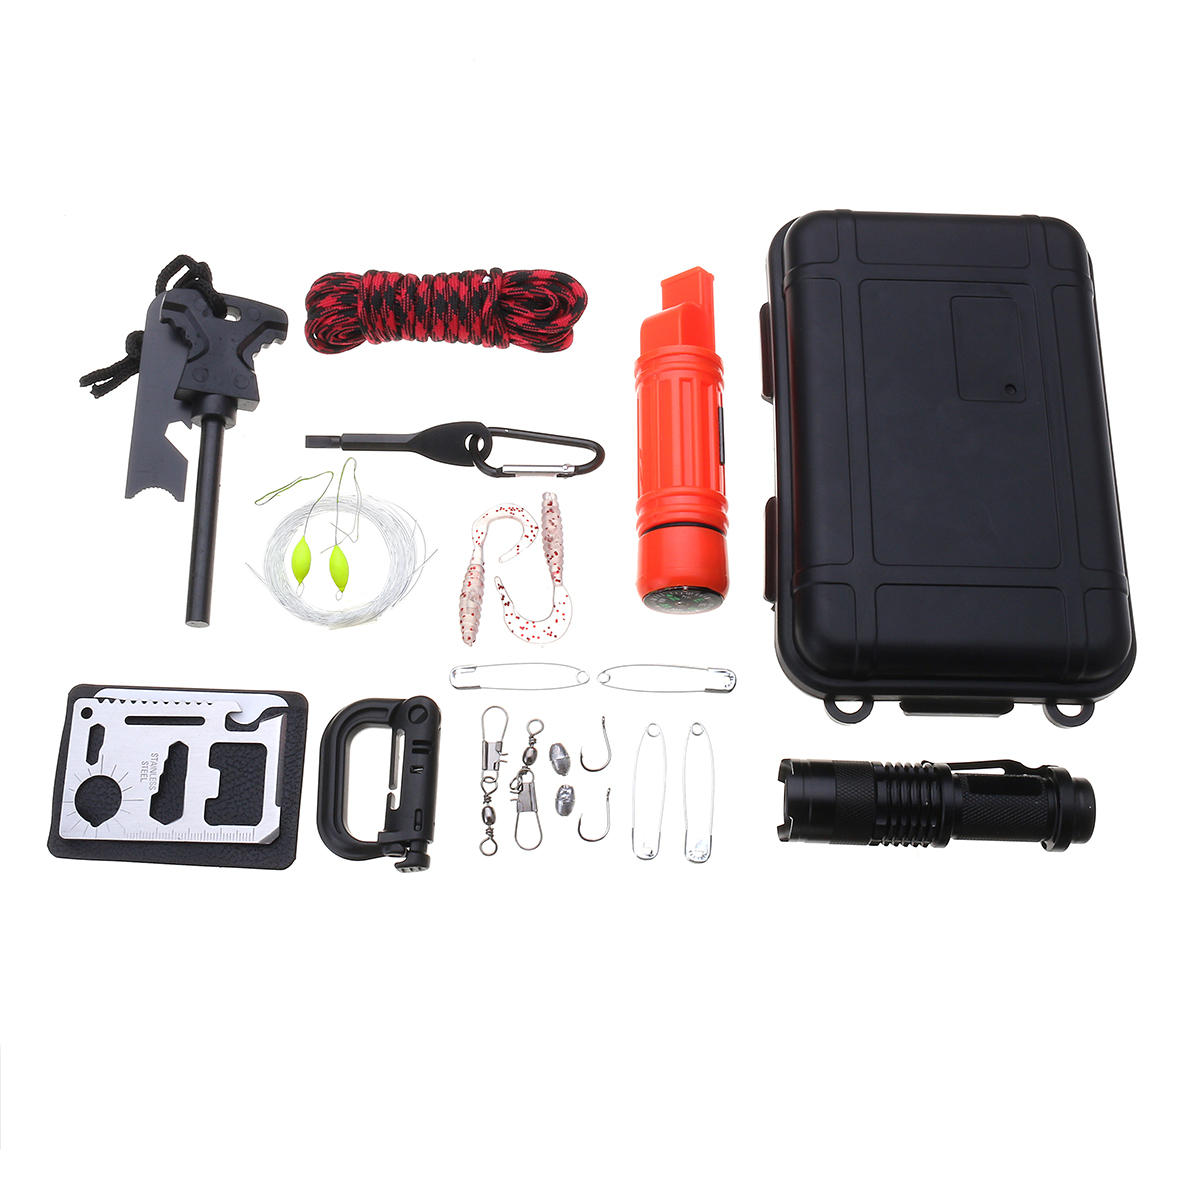 Emergency Survival Gear Kit SOS Survival Tools Kit With Umbrella Rope Compass Whistle Carabiner, Banggood  - buy with discount